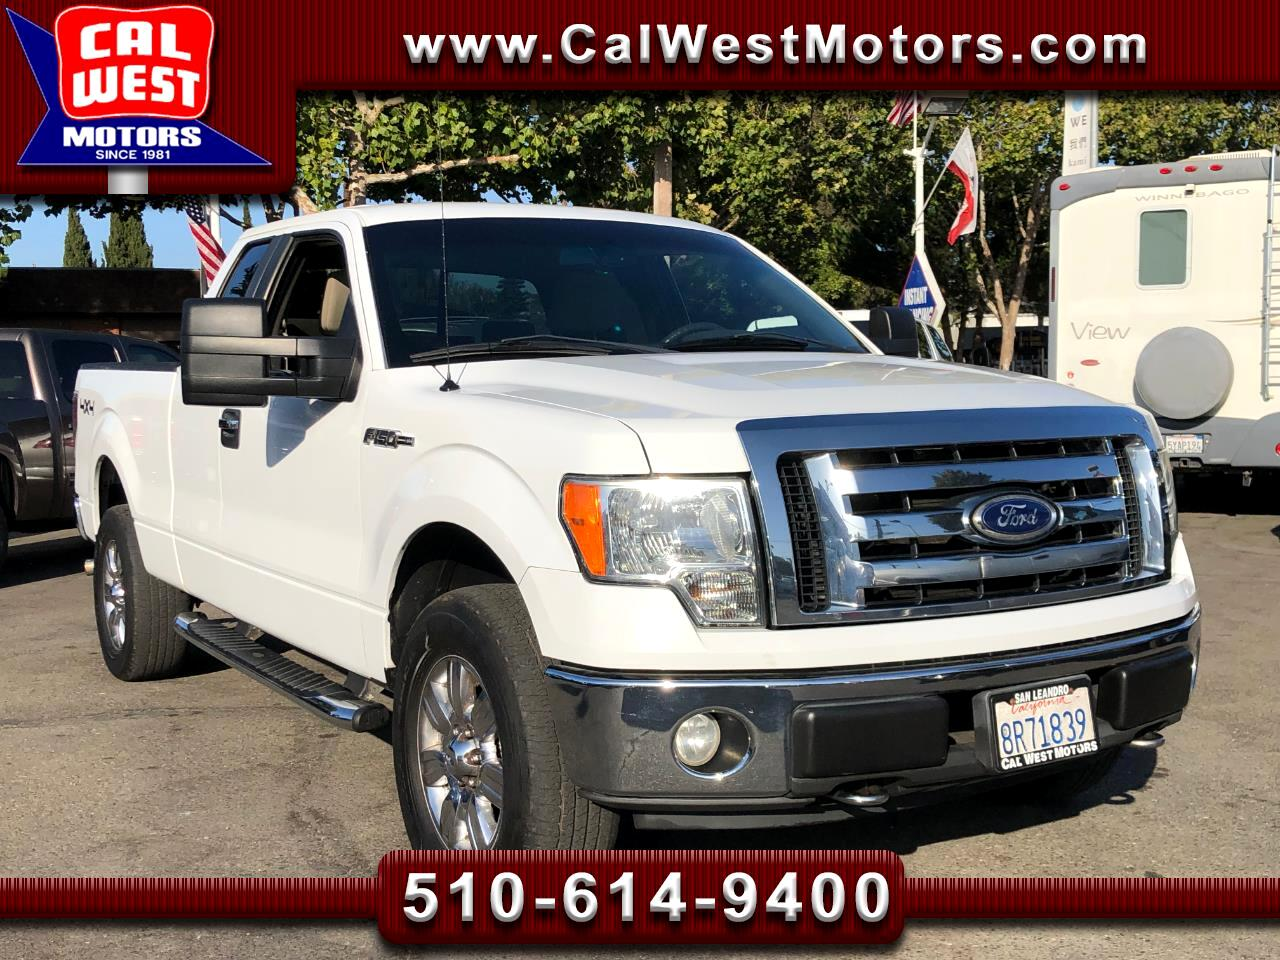 2009 Ford F-150 4X4 SuperCab 6.5Ft SYNC  1Owner VeryClean ExMtnce